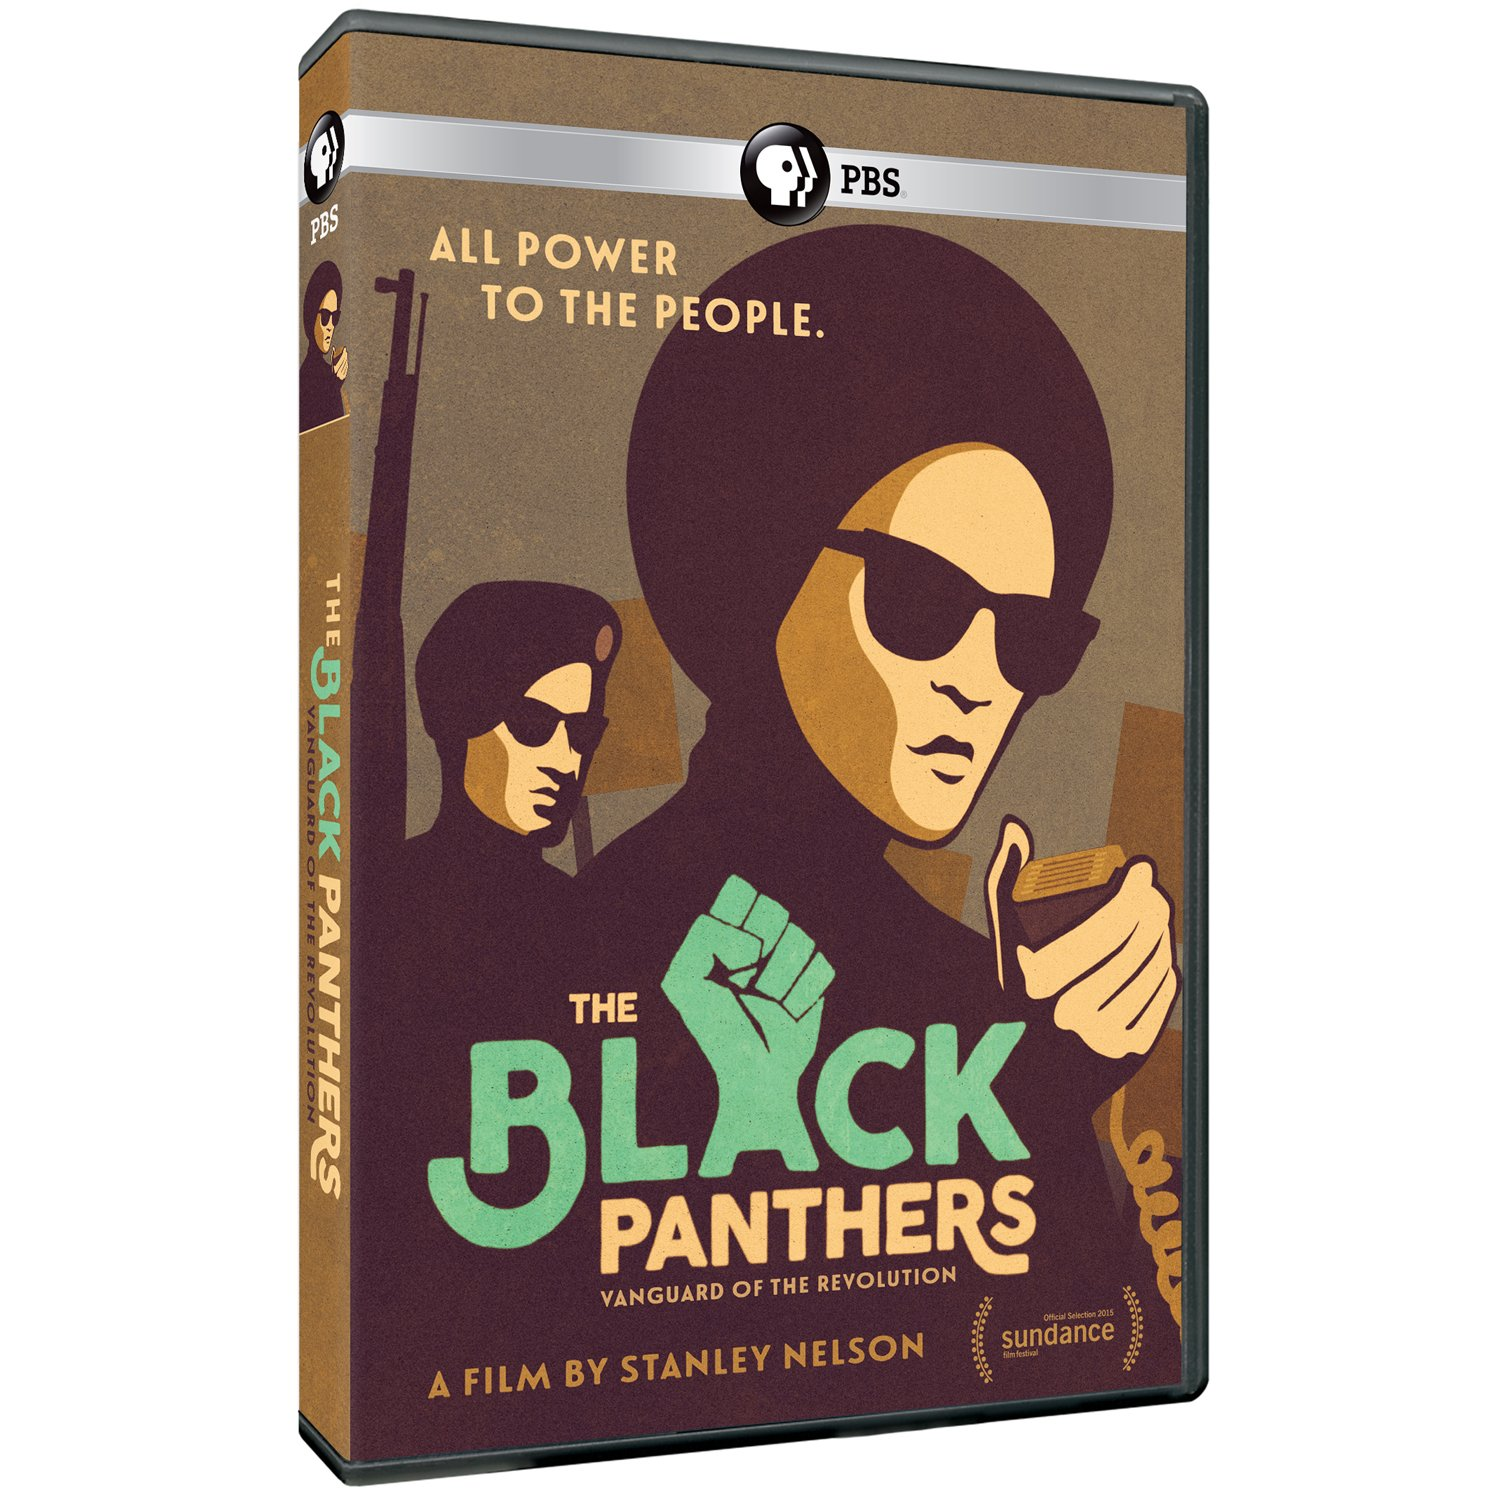 Amazon.com: Black Panthers: Vanguard of the Revolution: ., Stanley ...